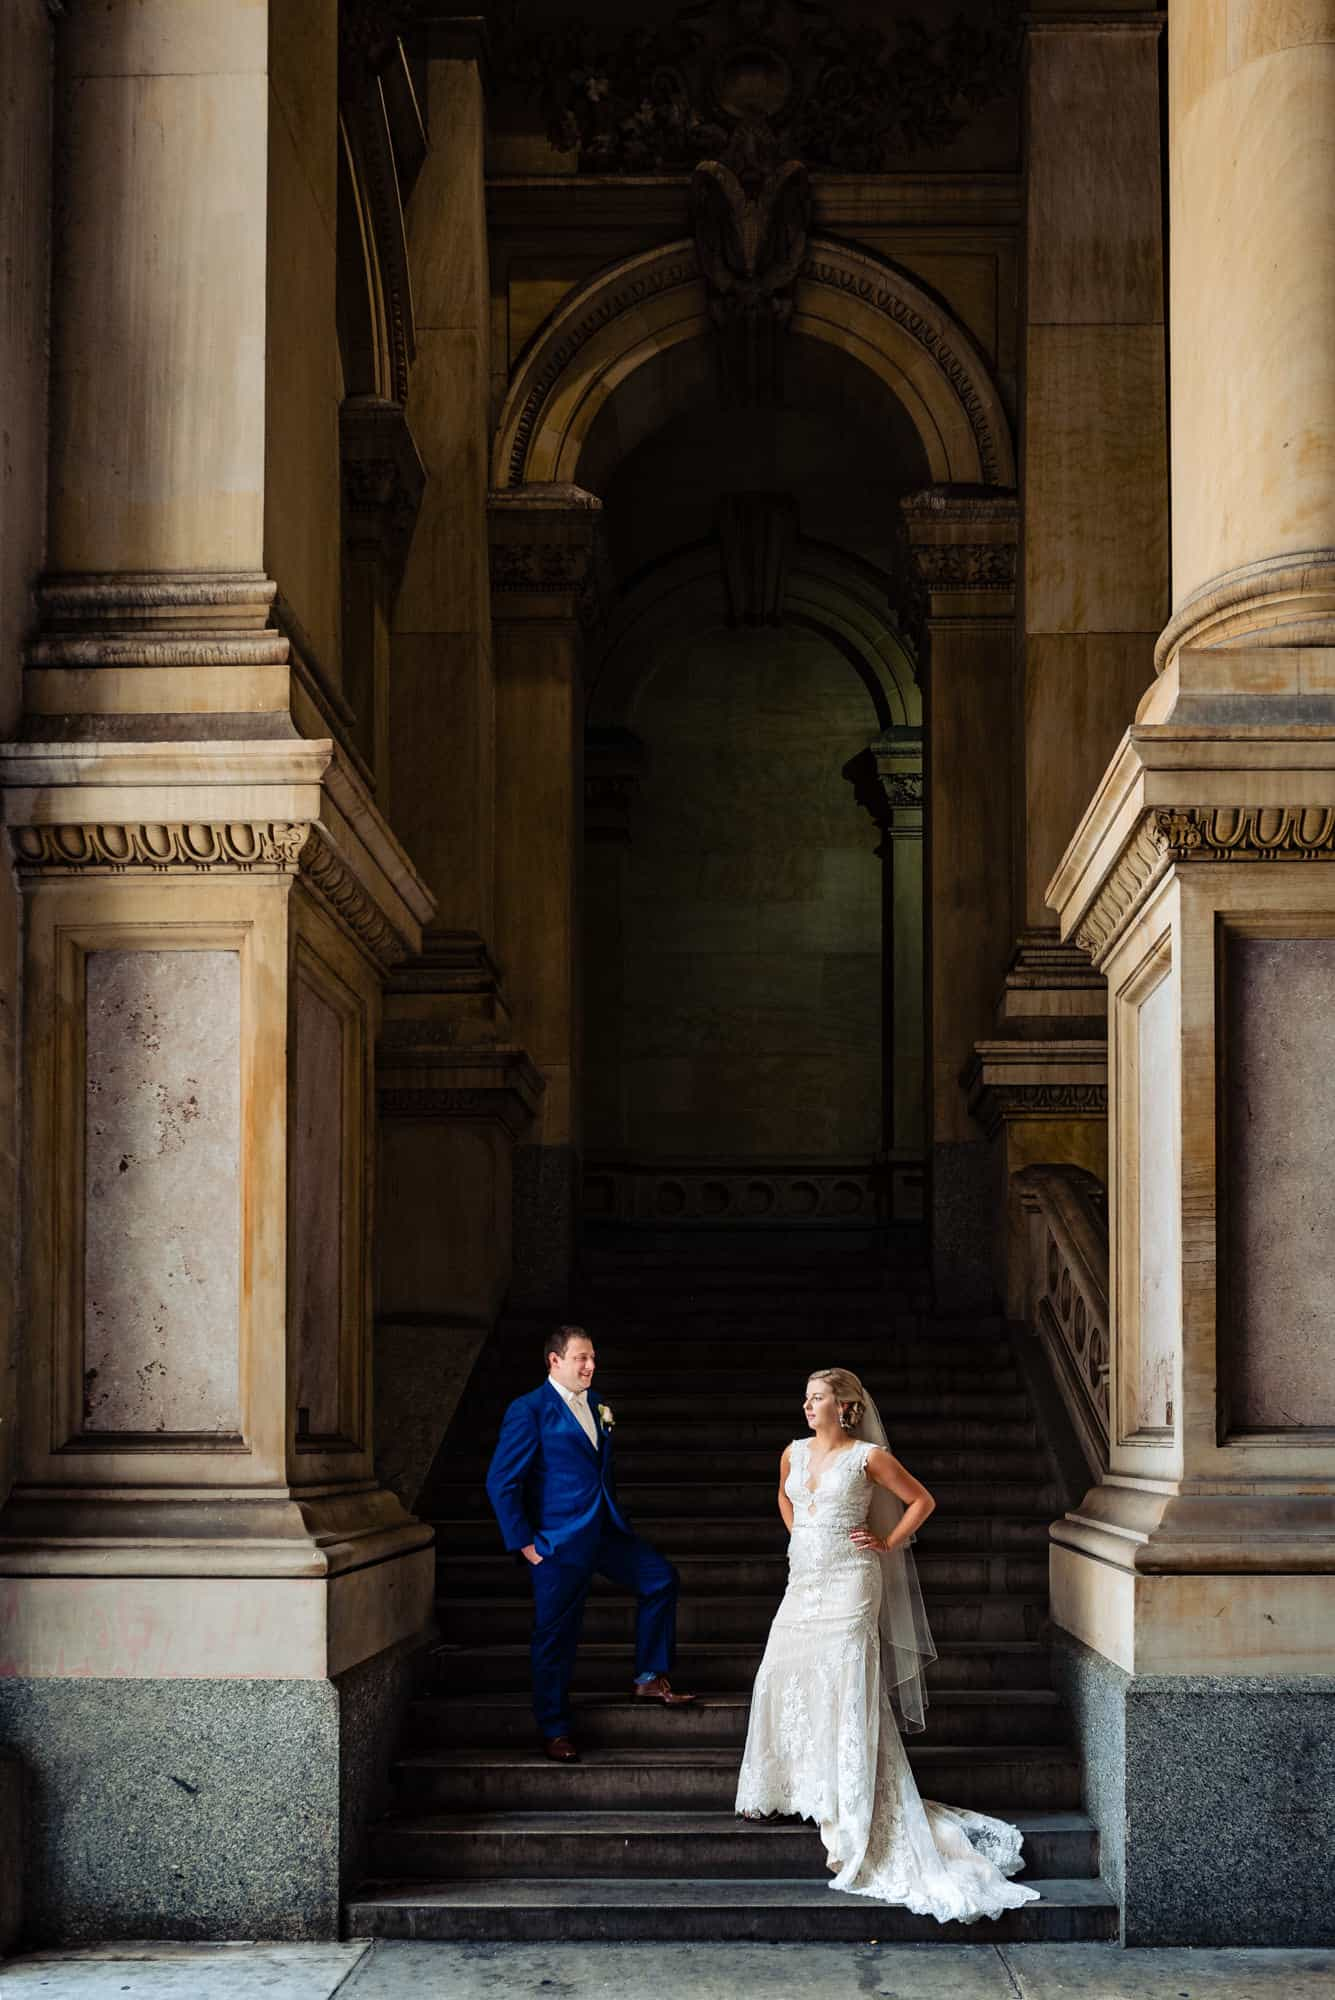 wedding day, bride and groom talking and posing in stair case